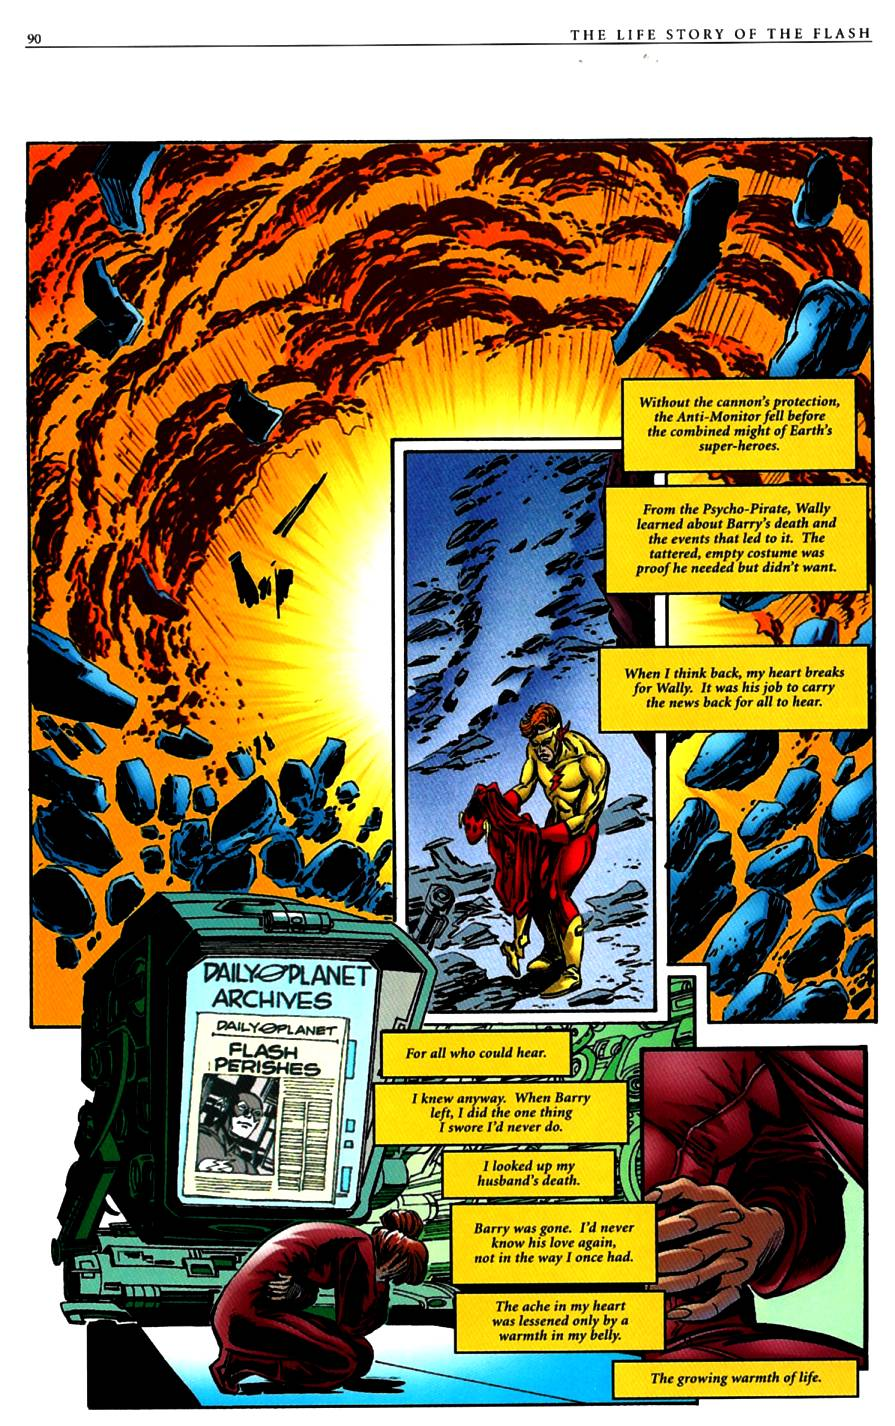 Read online The Life Story of the Flash comic -  Issue # Full - 92